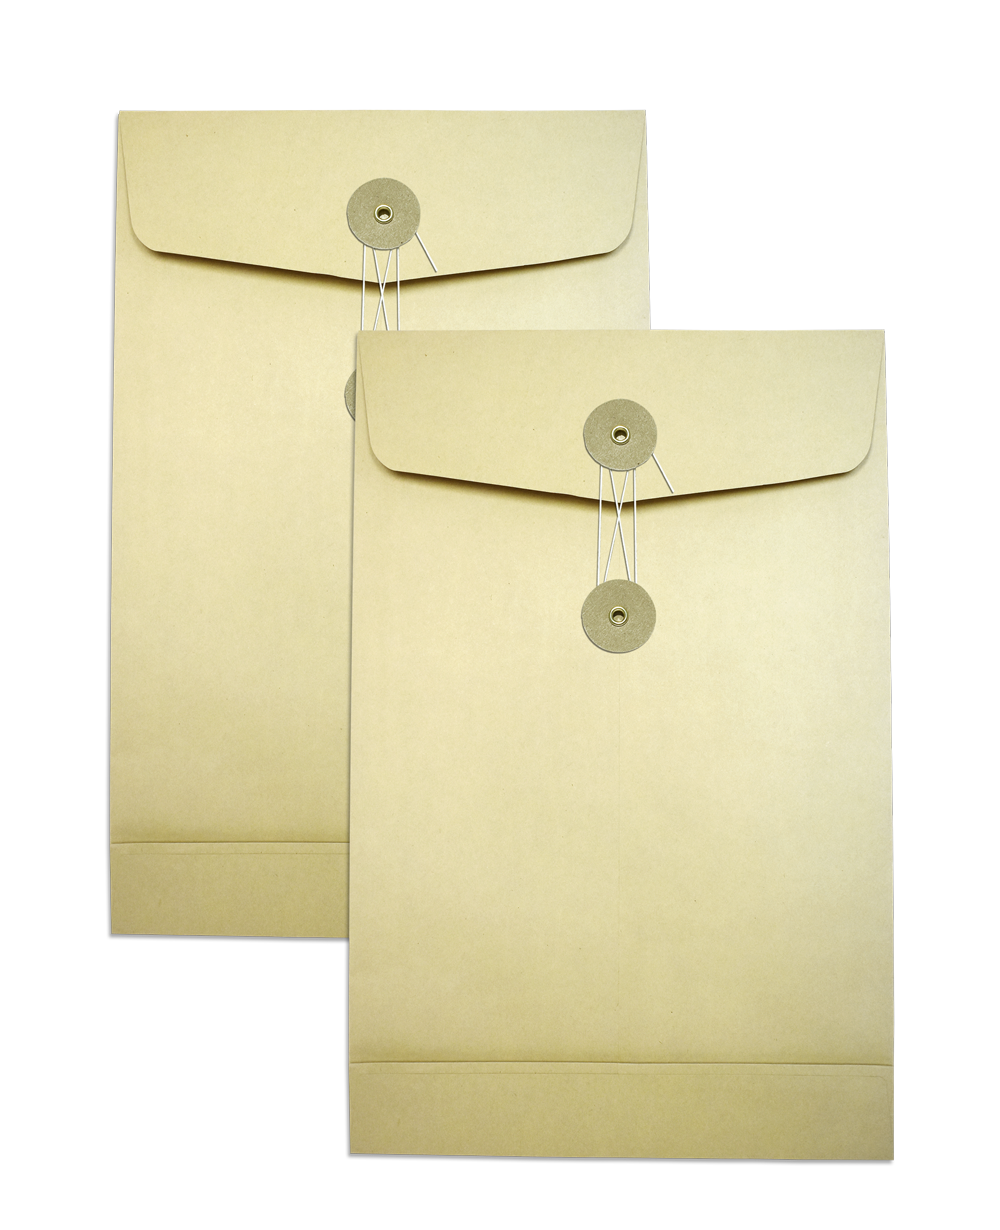 KI Enlarge Envelope No. 11 x 17 Eyelet & String